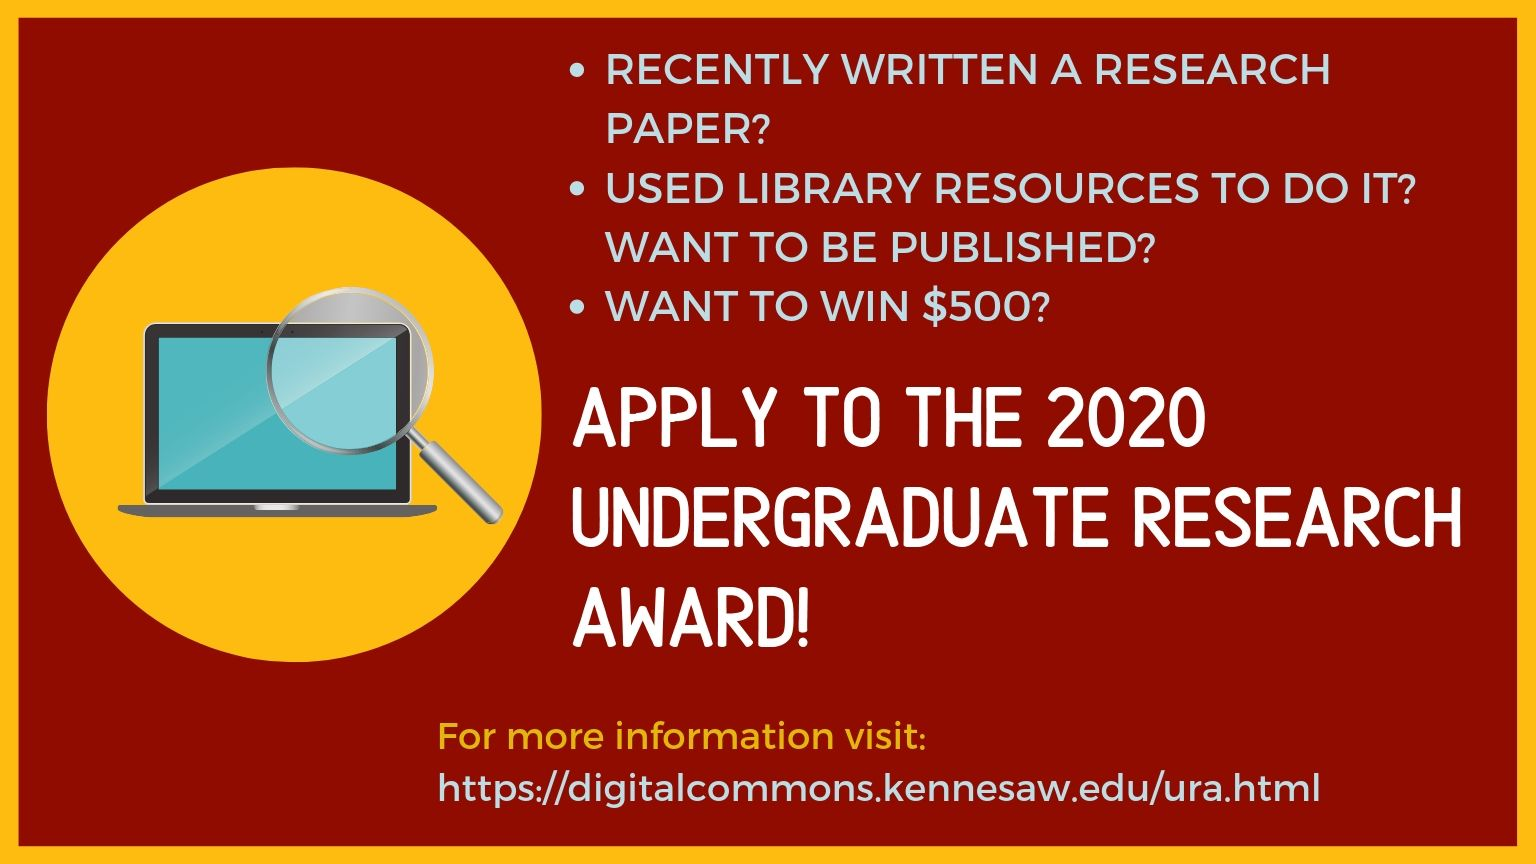 Q&A on the Undergraduate Research Library Award